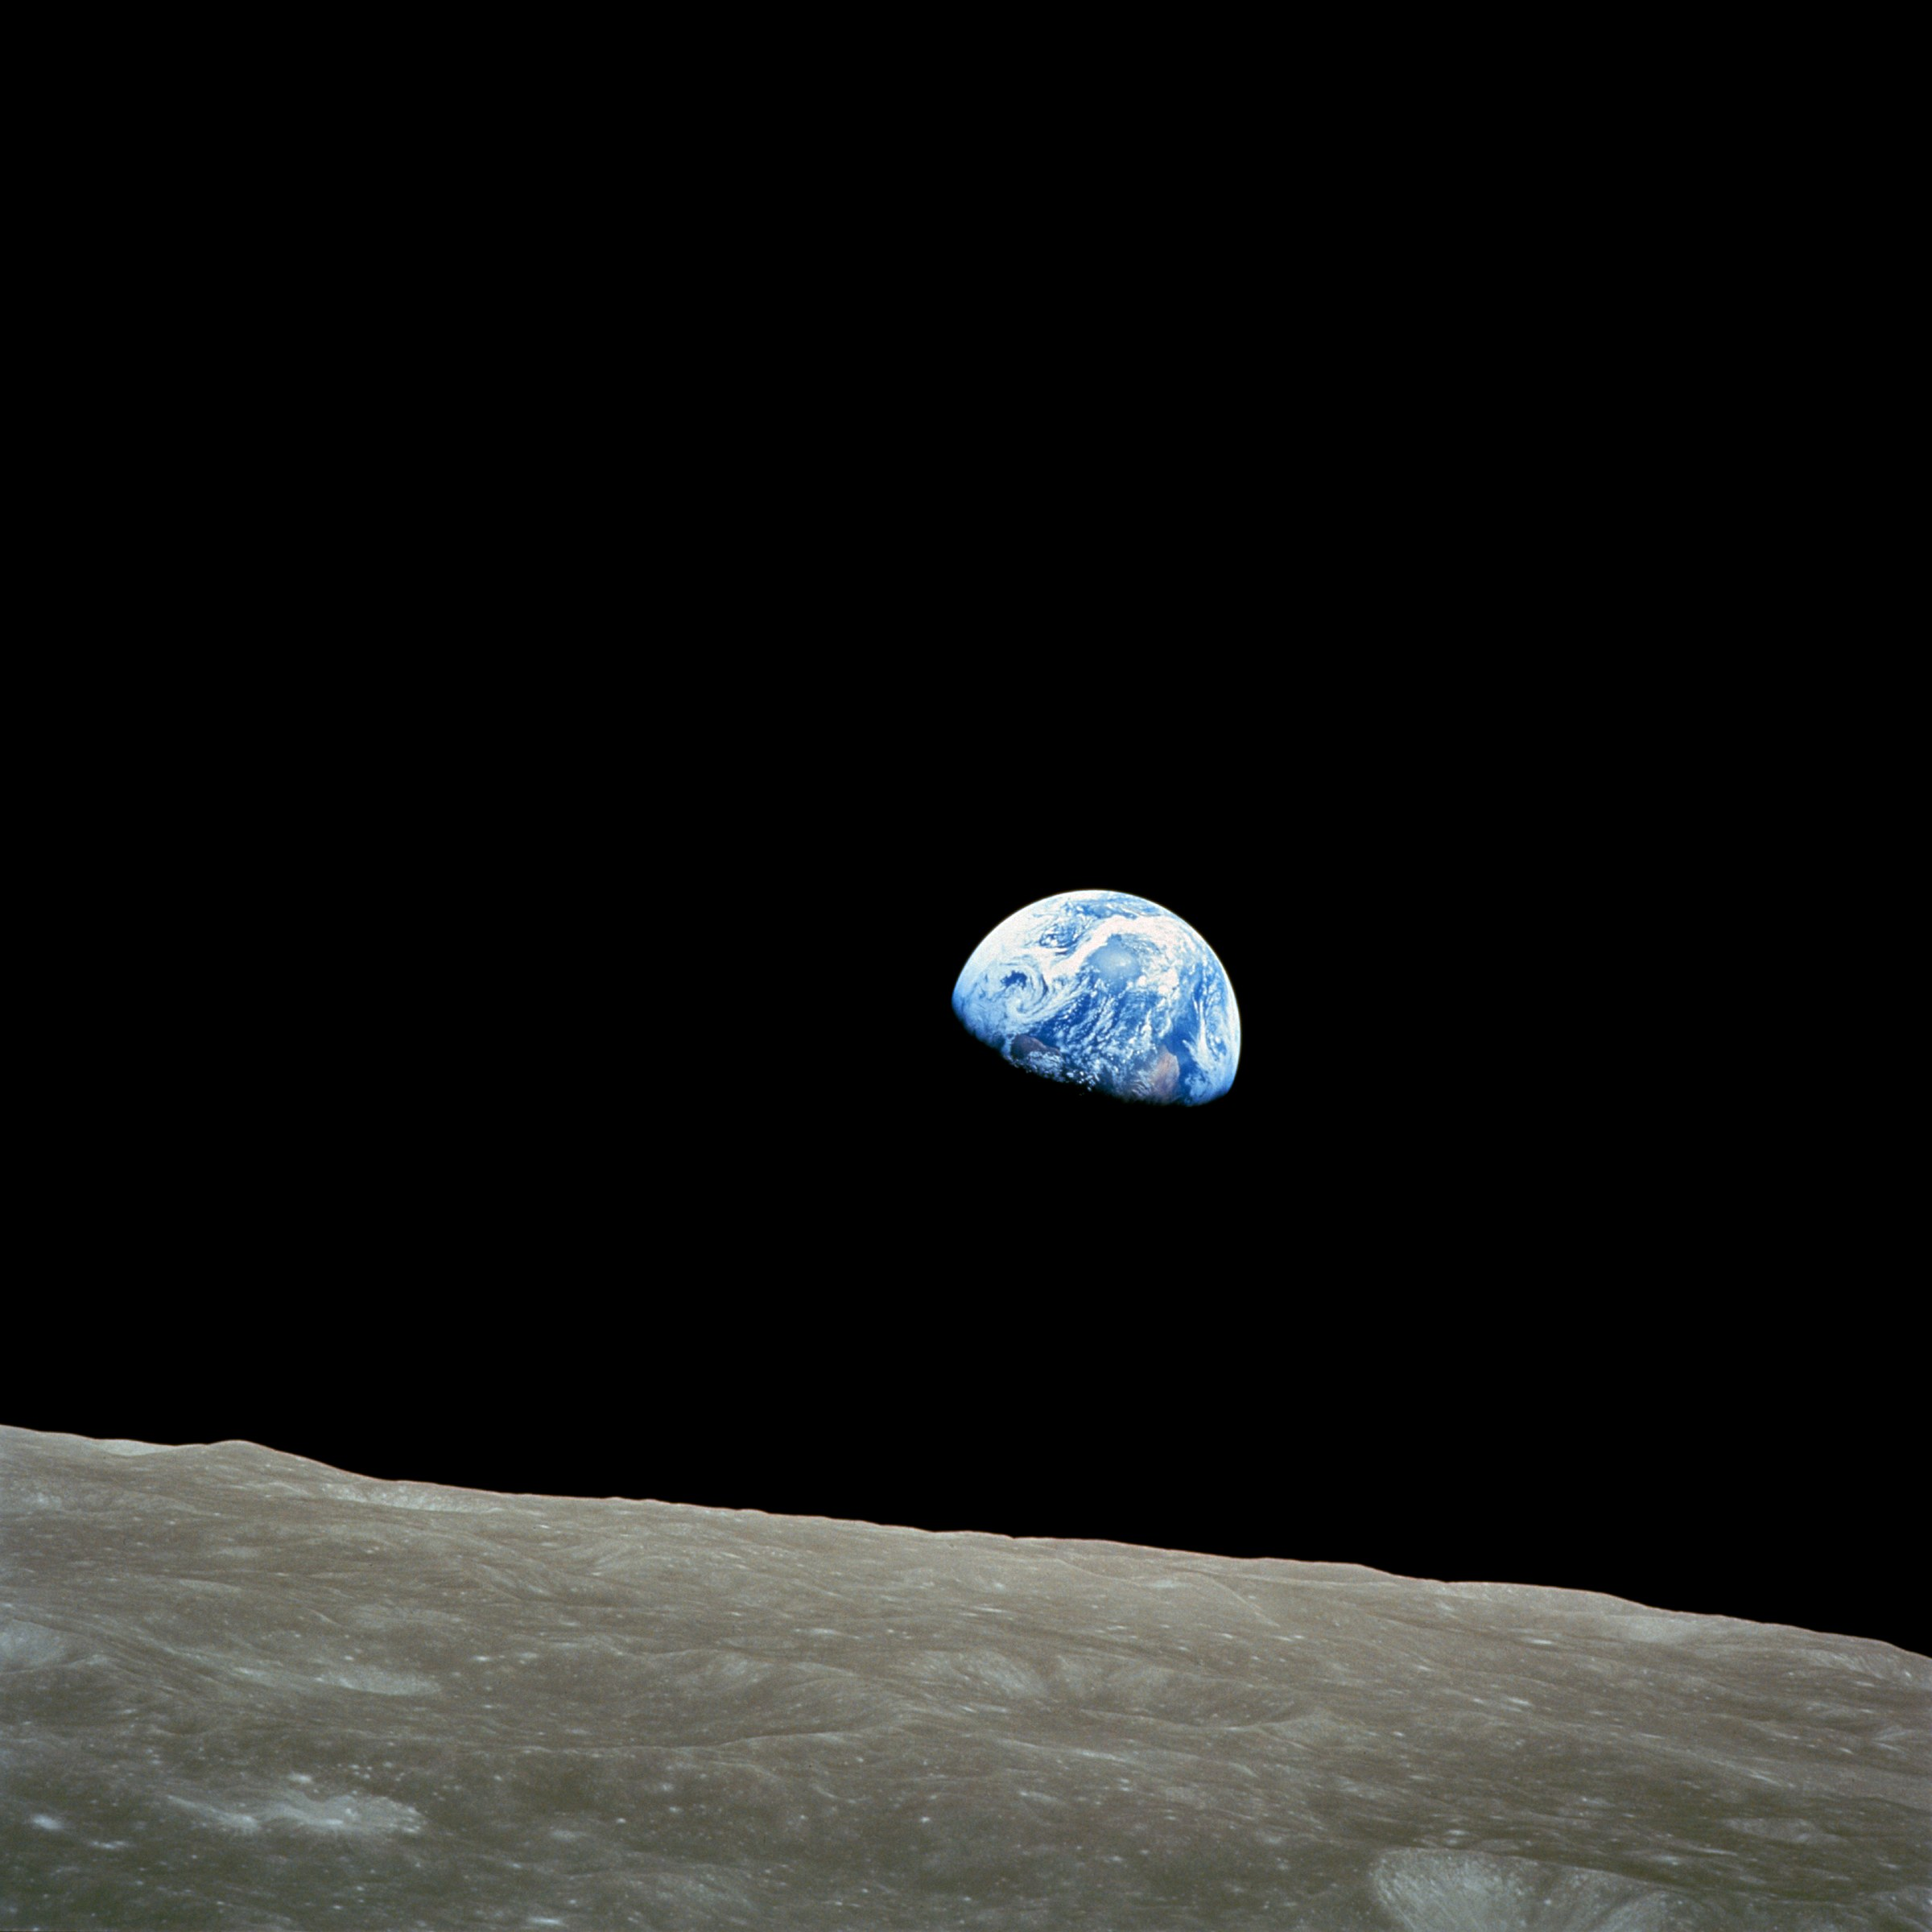 Astronaut William Anders took this picture on December 24th, 1968, during the Apollo 8 mission